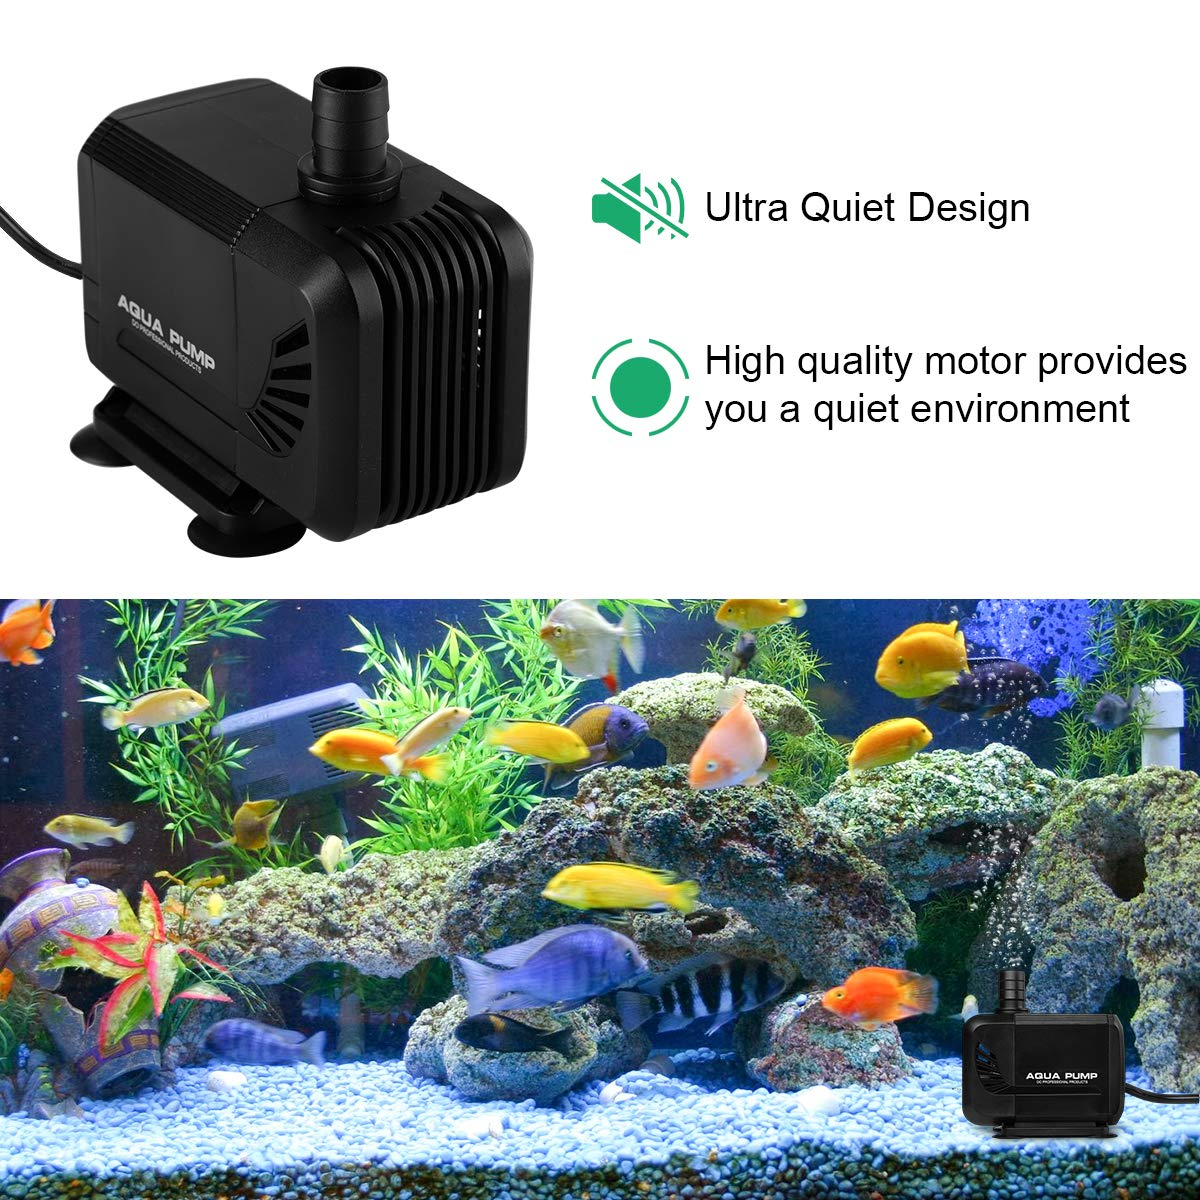 KEDSUM 550GPH Inline//Submersible Water Pump 6 Nozzles for Fish Tank Aquarium 2100L//H, 35W Pond Hydroponics Ultra Quiet Water Pump with 6.5ft High Lift Fountain Pump with 6.5ft Power Cord